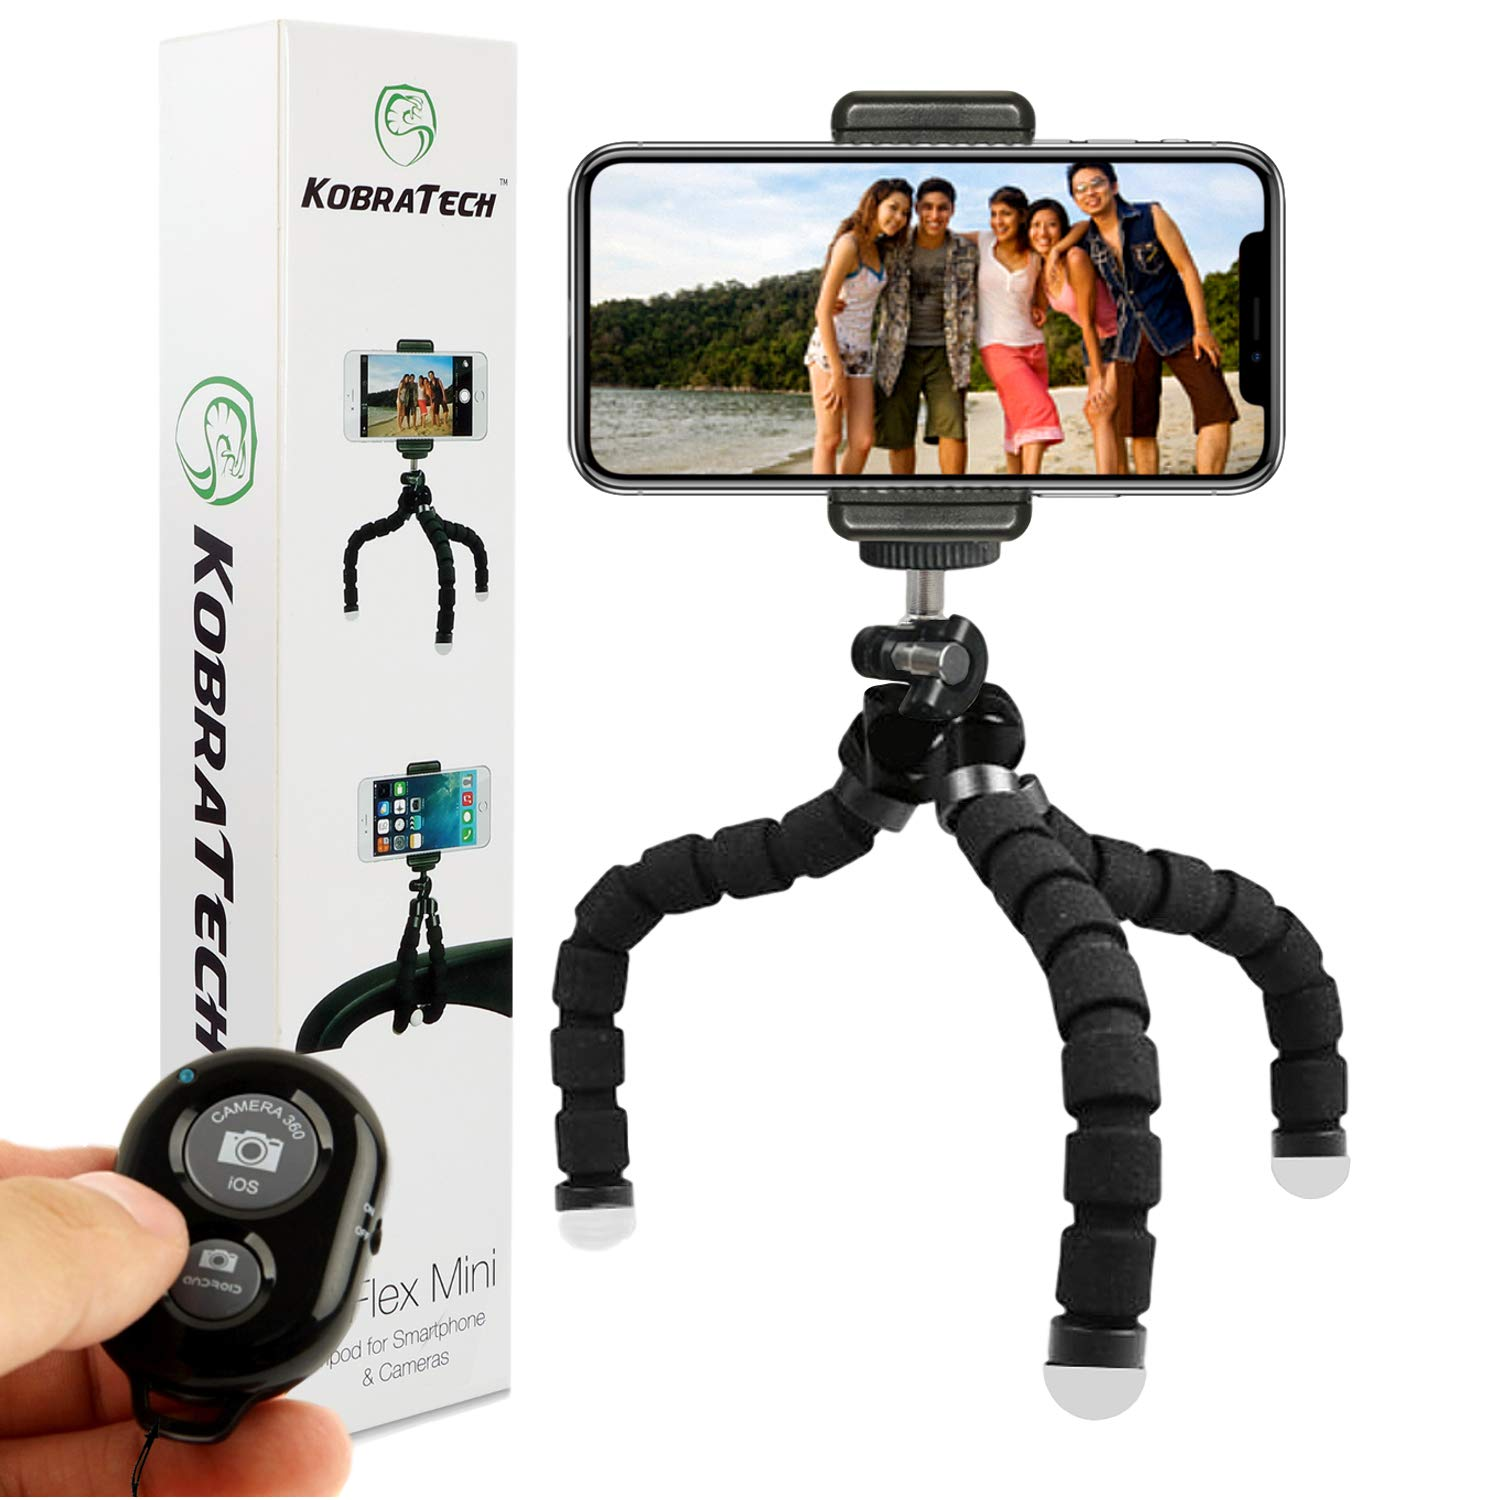 KobraTech Cell Phone Tripod TriFlex Mini Tripod for iPhone & Android Includes Bluetooth Remote Shutter by KobraTech